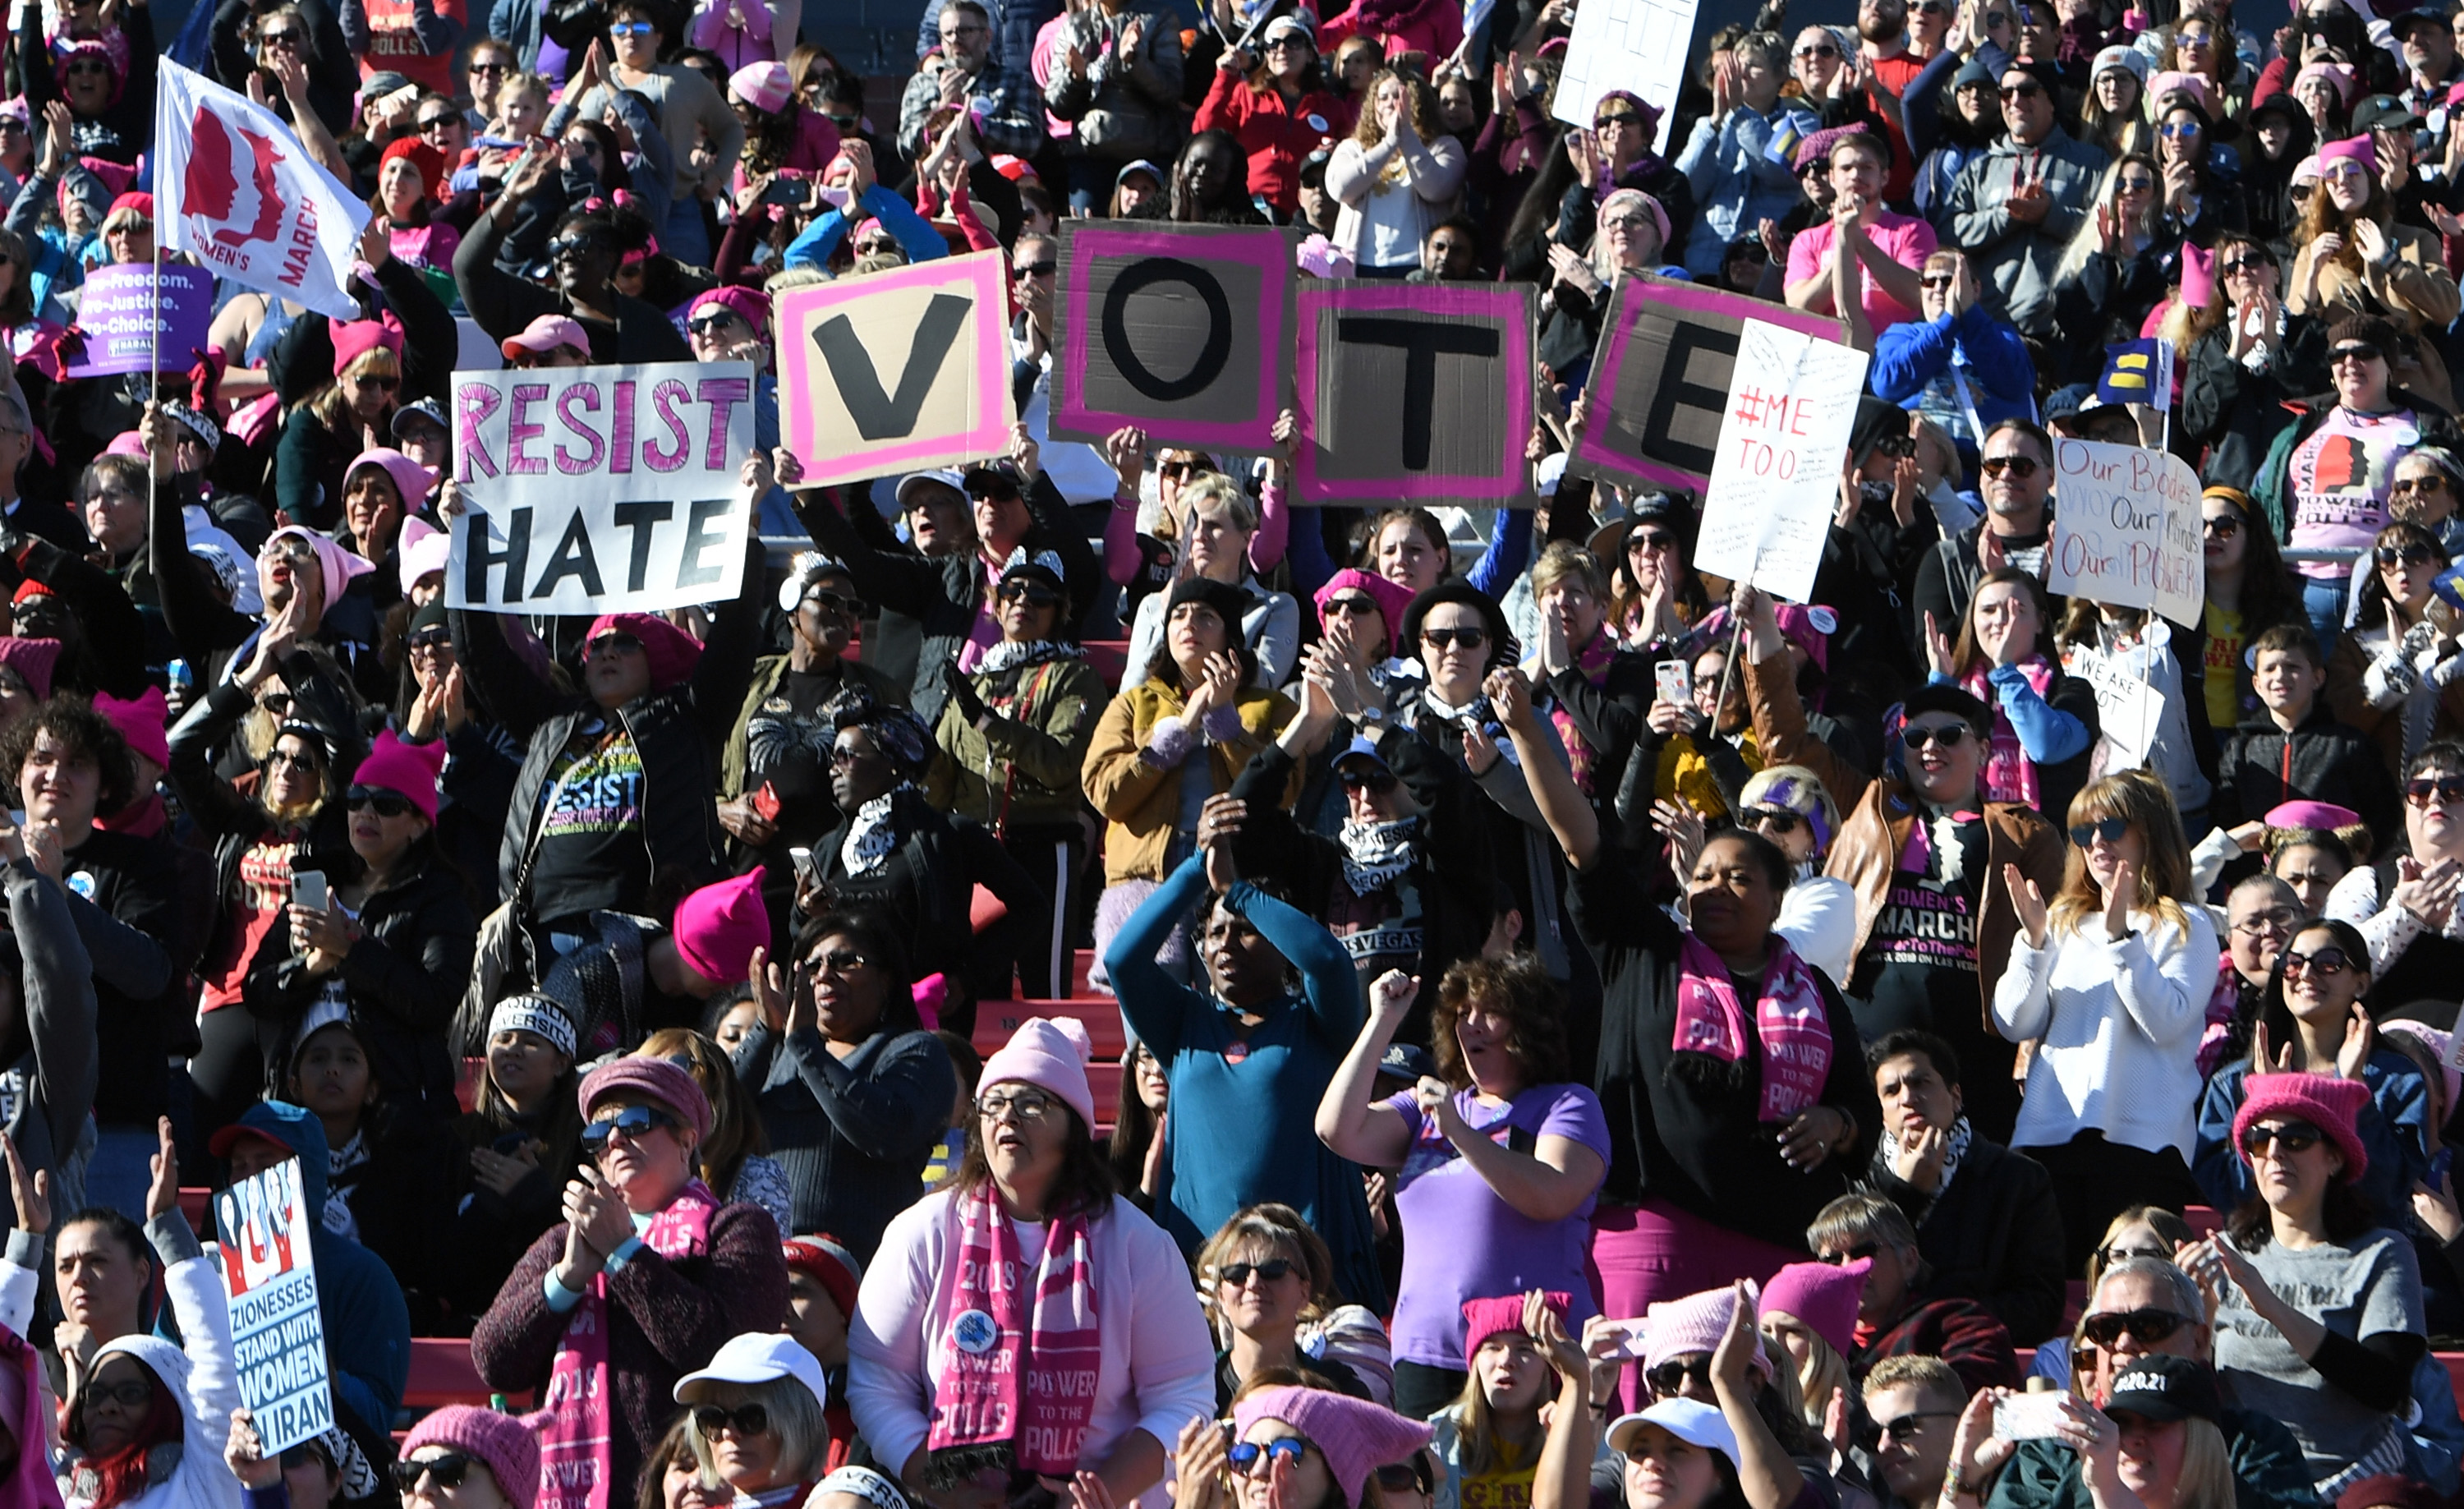 Demonstrators attend the Women's March  Power to the Polls  voter registration tour launch at Sam Boyd Stadium on January 21, 2018 in Las Vegas, Nevada.